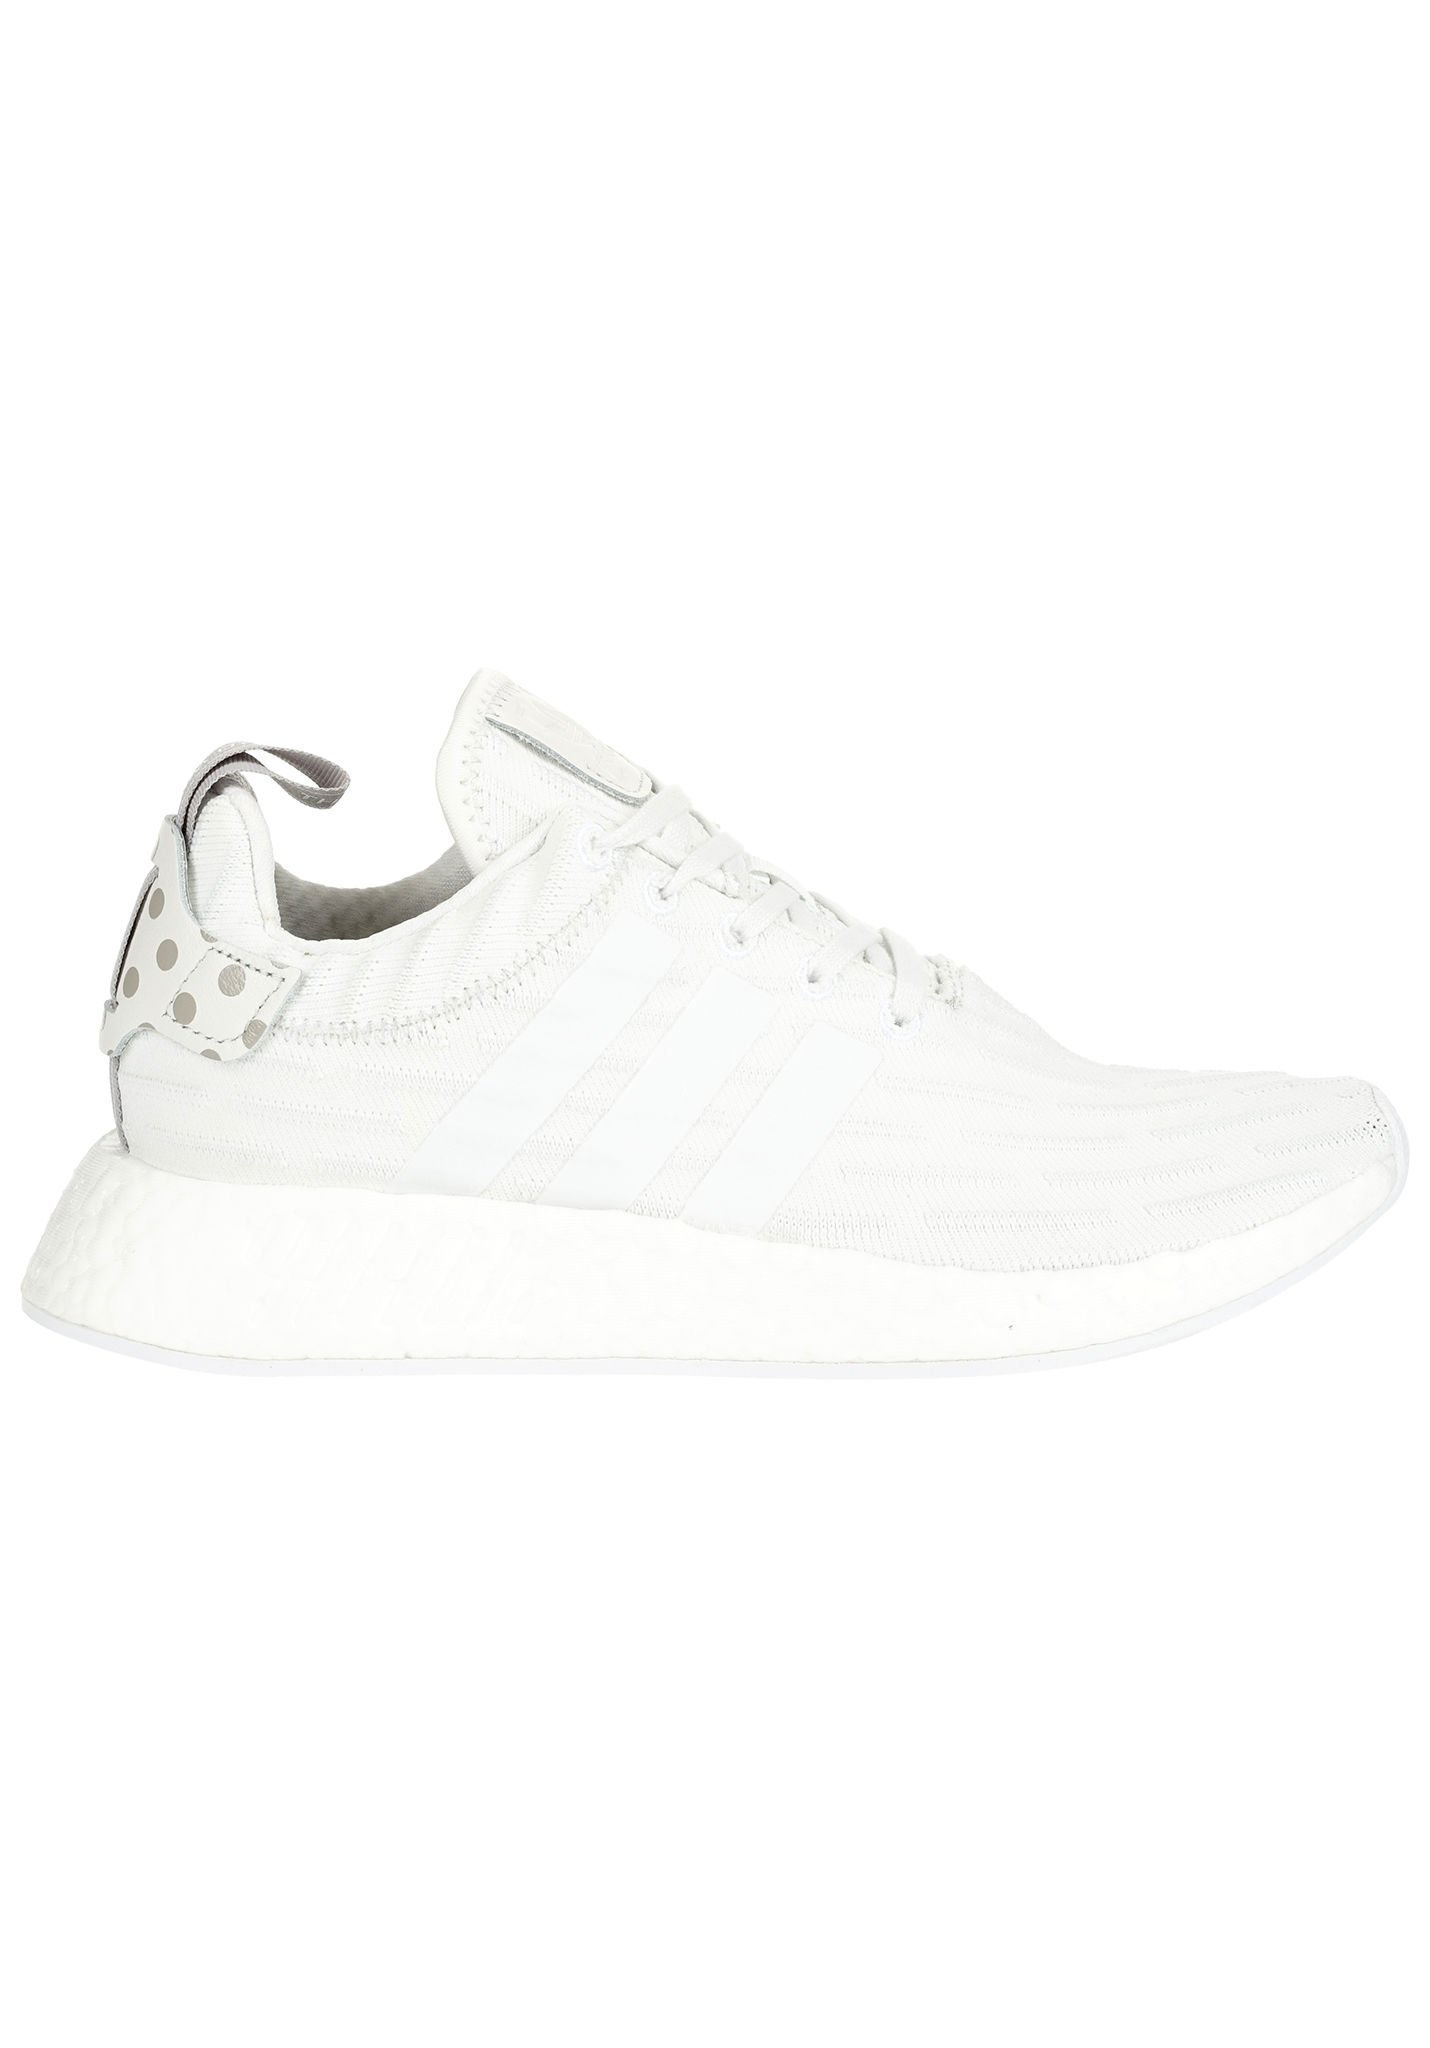 adidas nmd r2 primeknit sneakers for women white planet sports